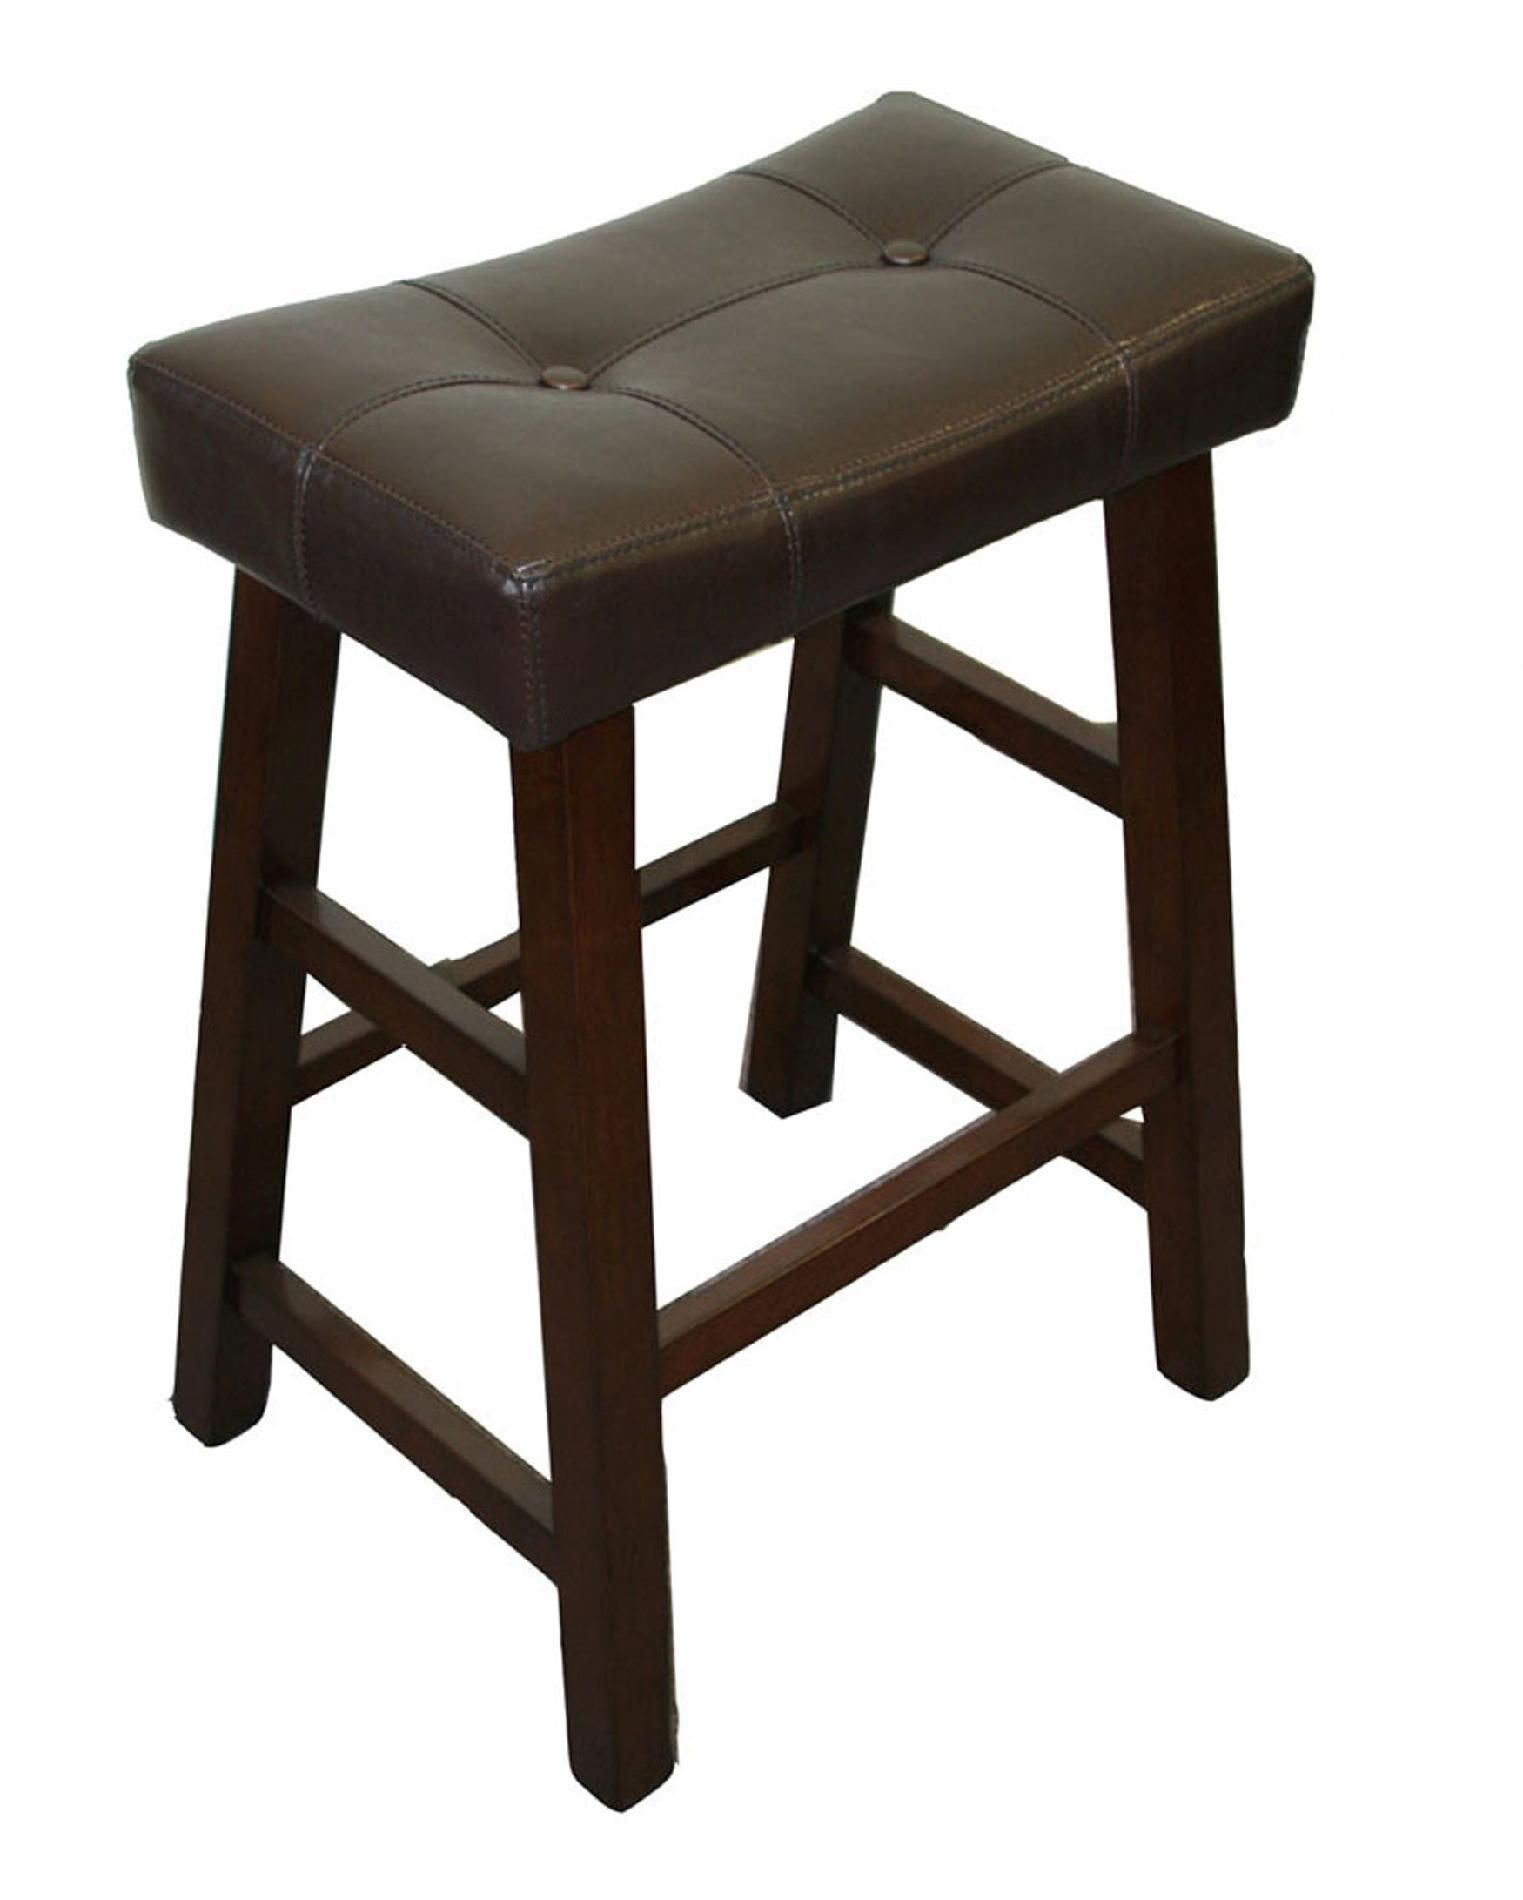 Tufted Saddle Counter Stool Is Just The Right Height Tufted Saddle